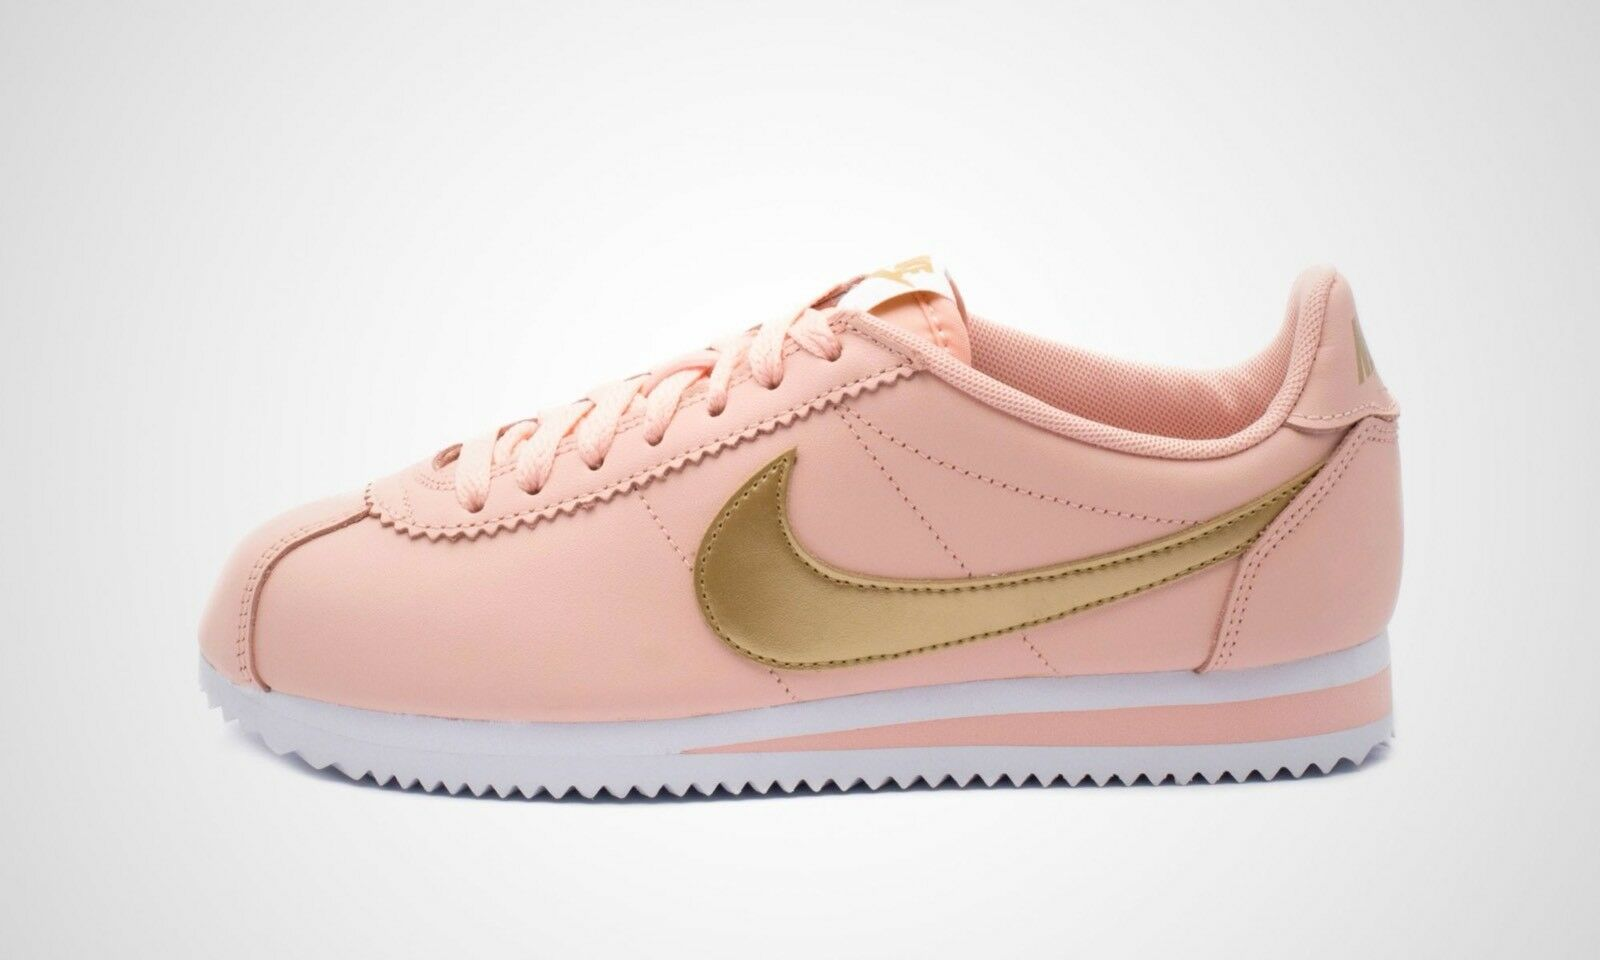 UK 5.5 Women's Nike Classic Cortez Leather Trainers EUR 39 US 8 807471-800